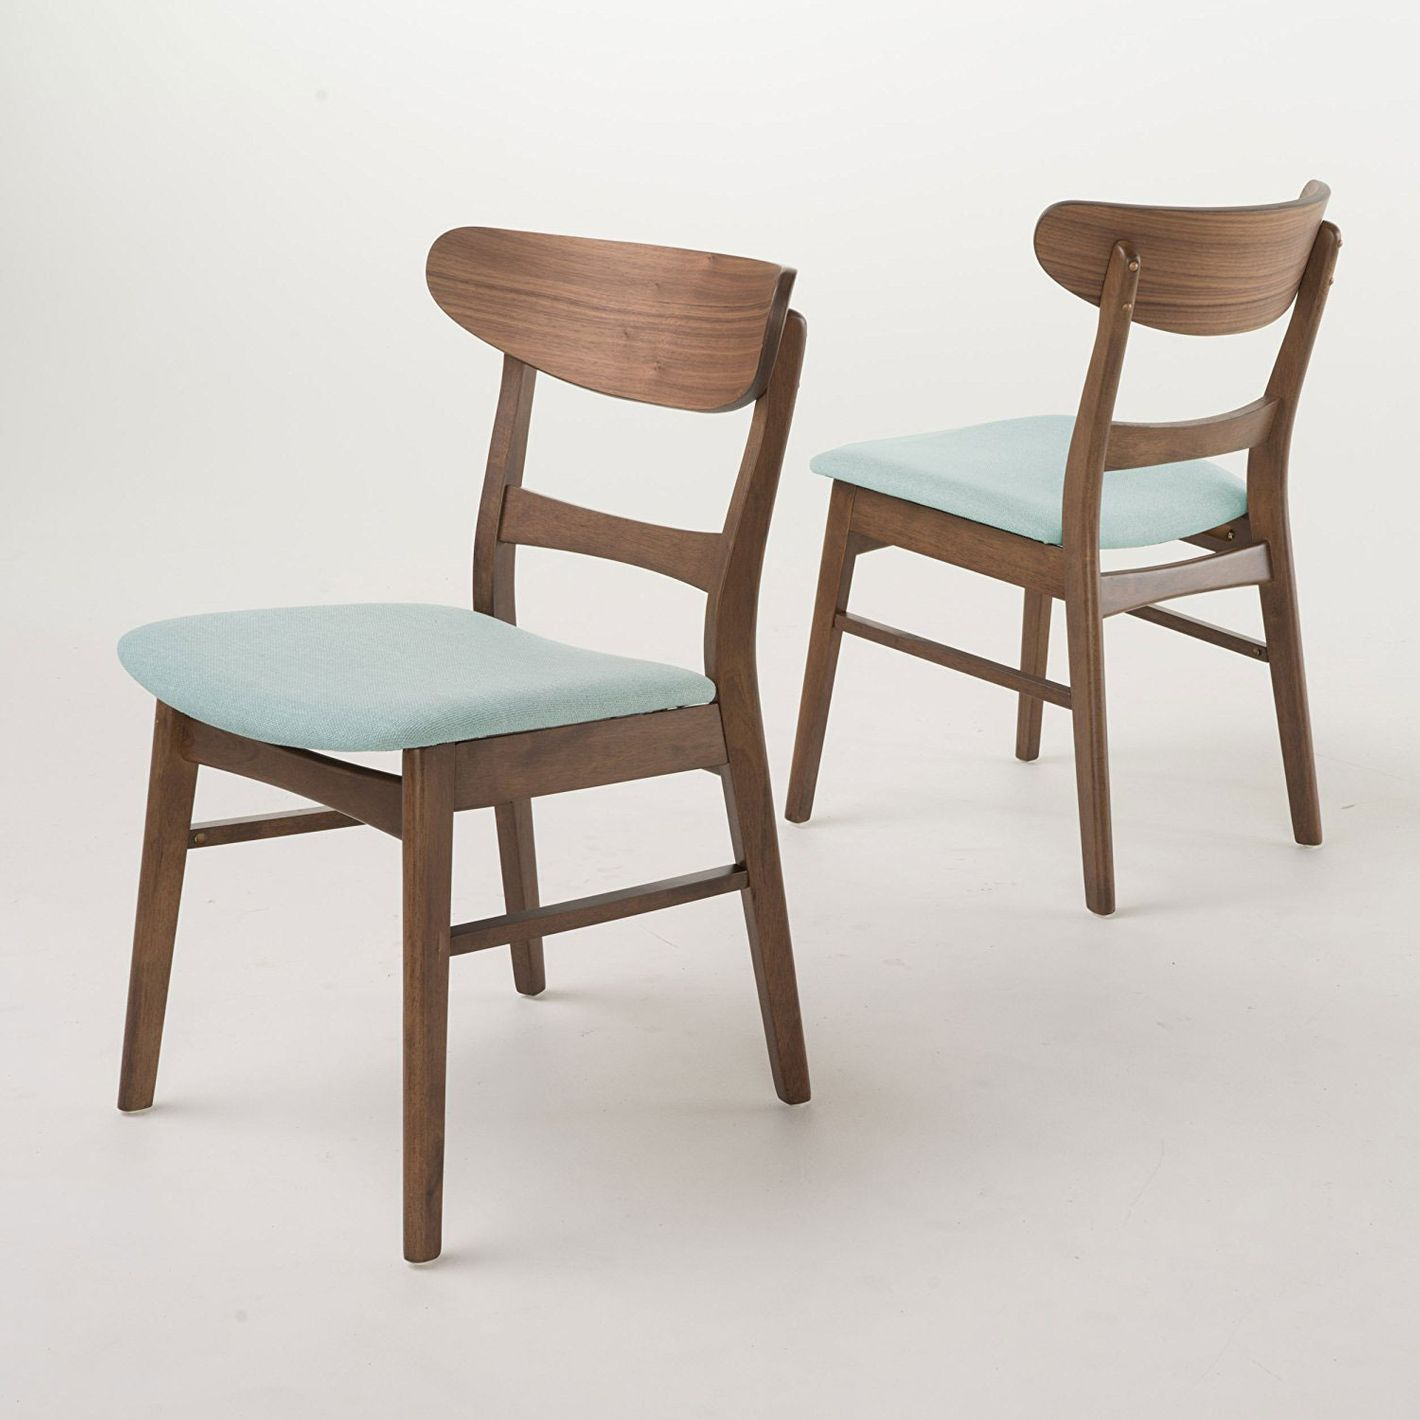 GDF Studio Helen Mid Century Modern Dining Chair, Set of 2